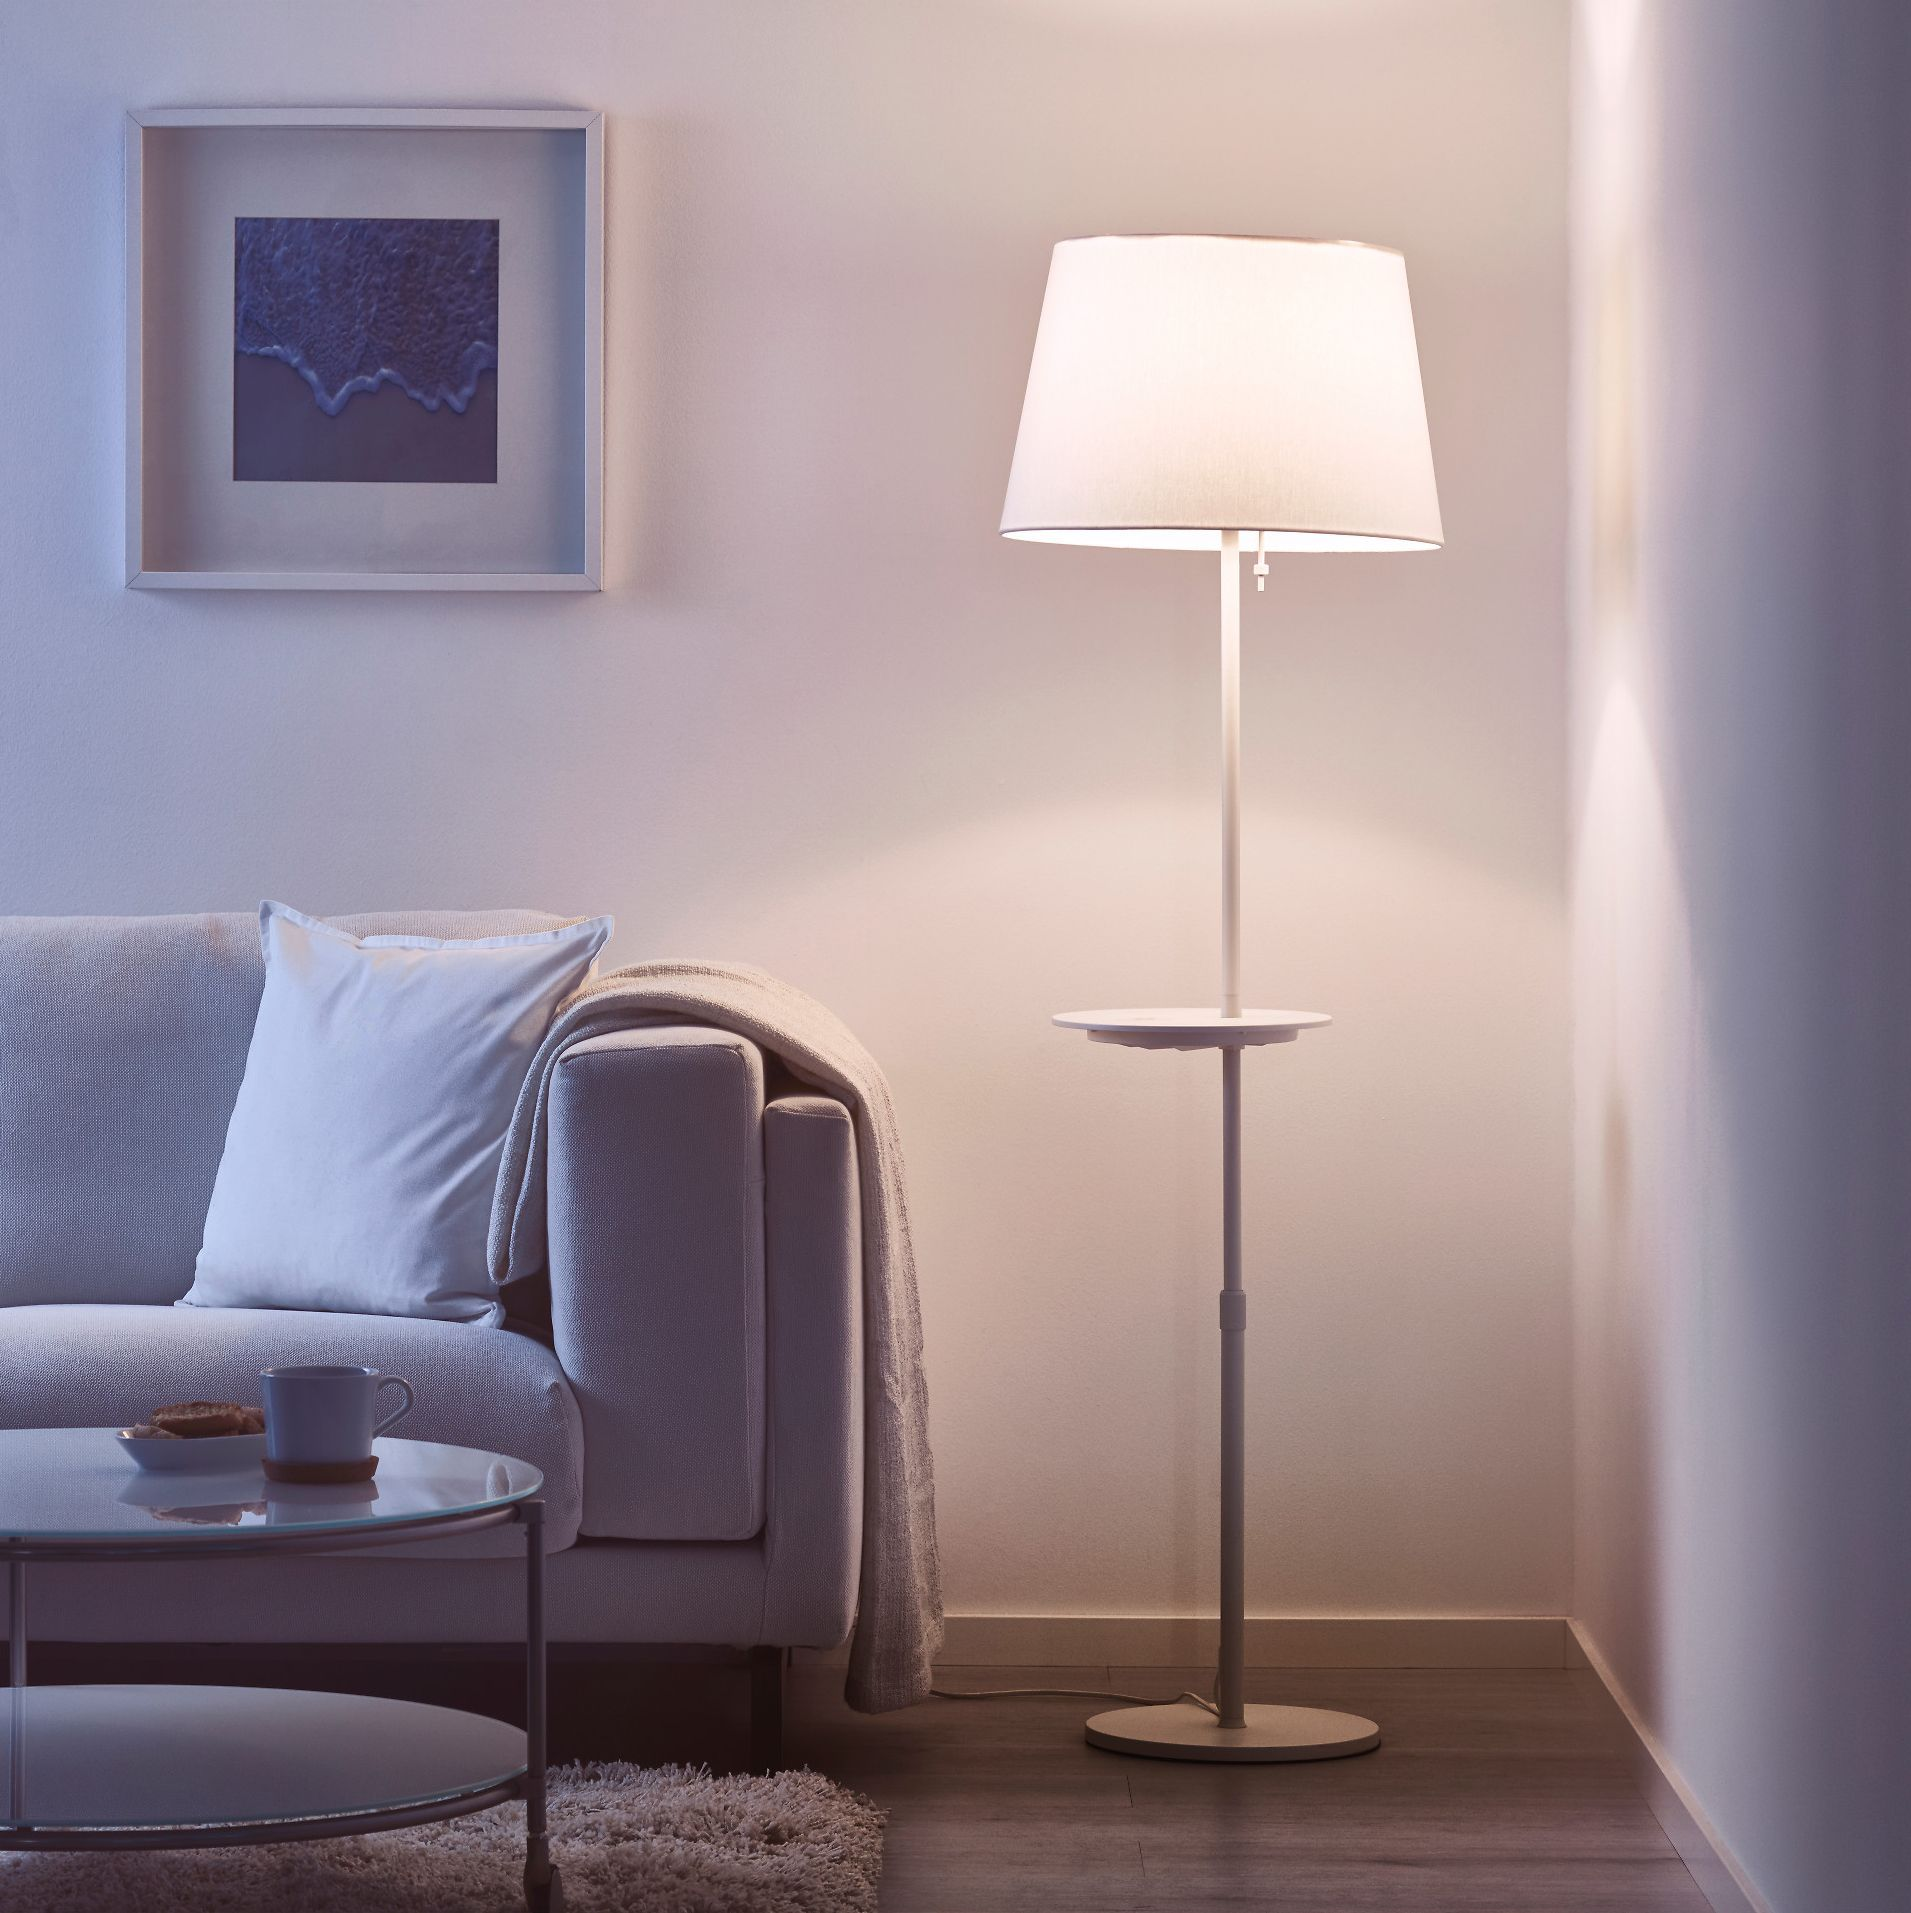 10 Essential Ikea Pieces For Small Living Rooms Floor Lamps Living Room Small Living Rooms Ikea Living Room #small #living #room #lamps